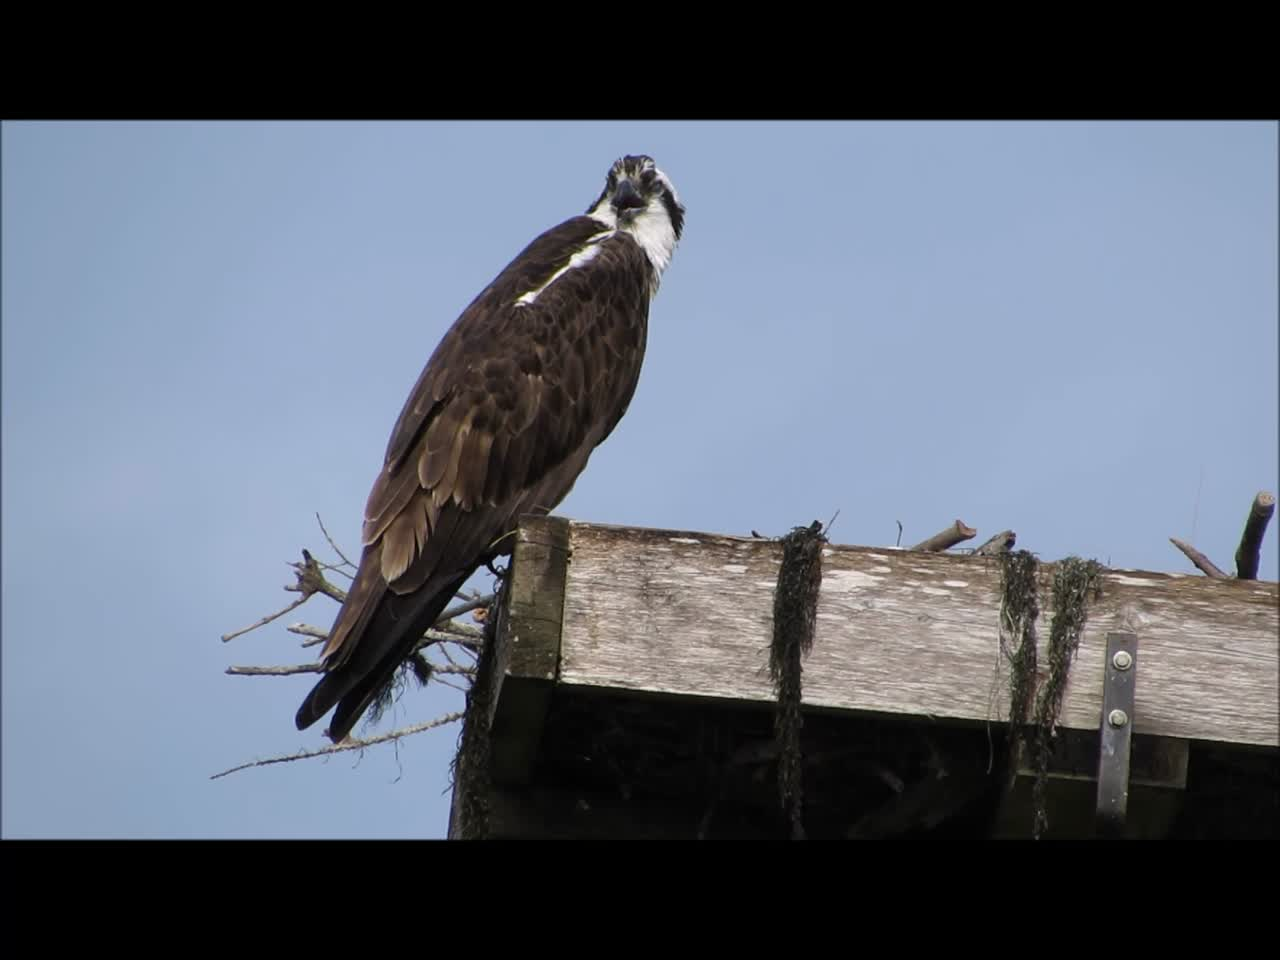 Mama Osprey calling for fish